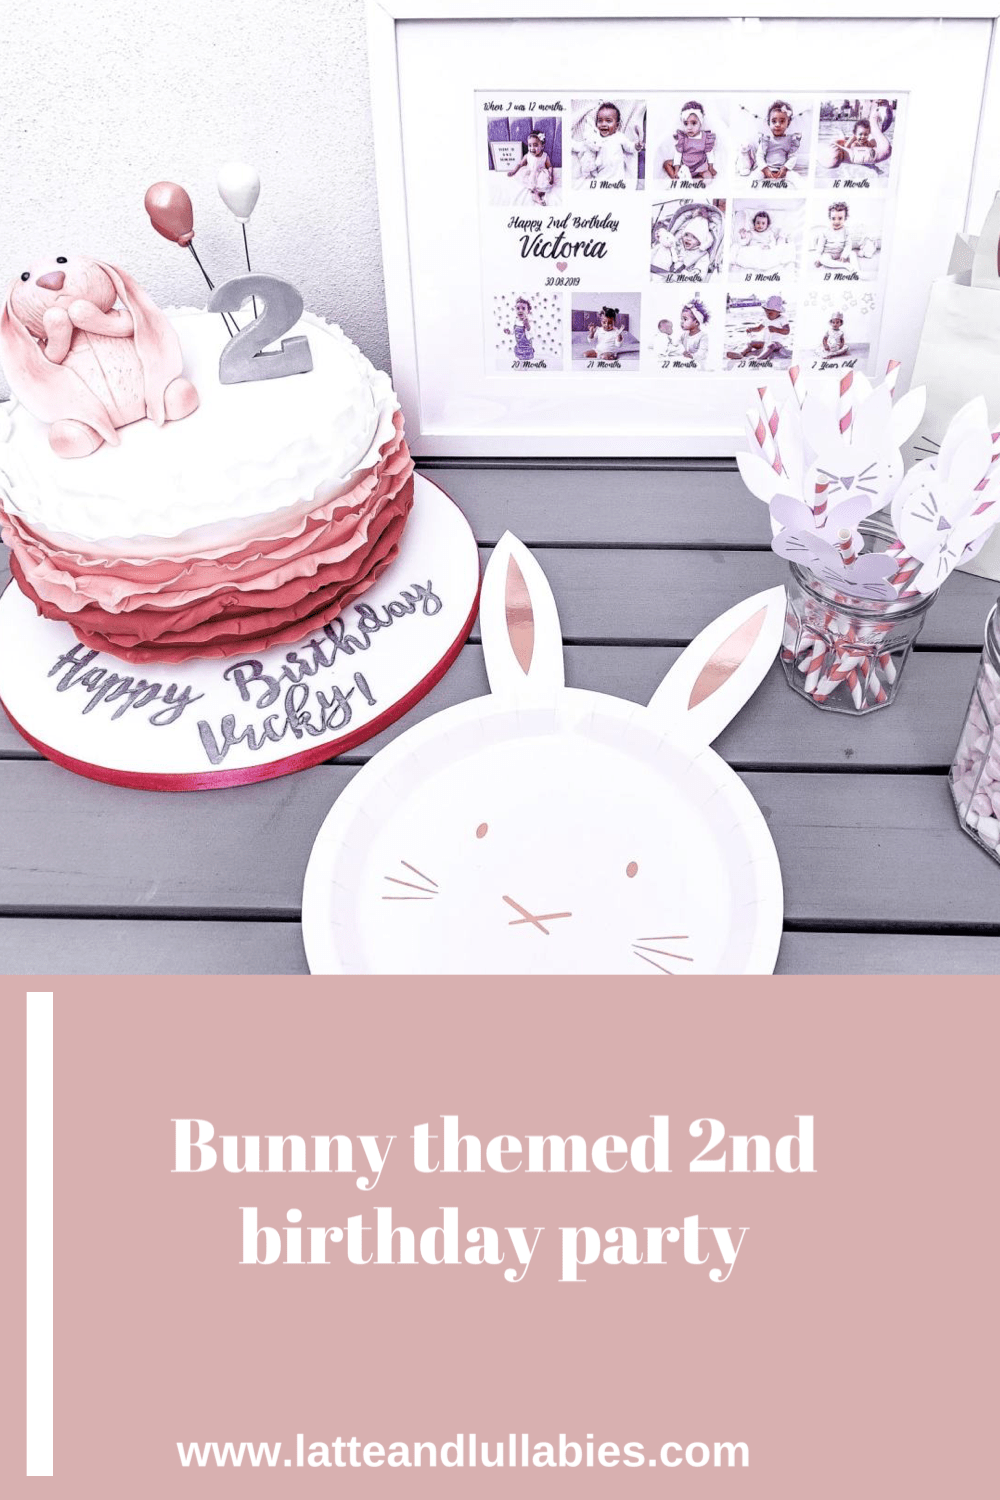 Bunny themed 2nd birthday party